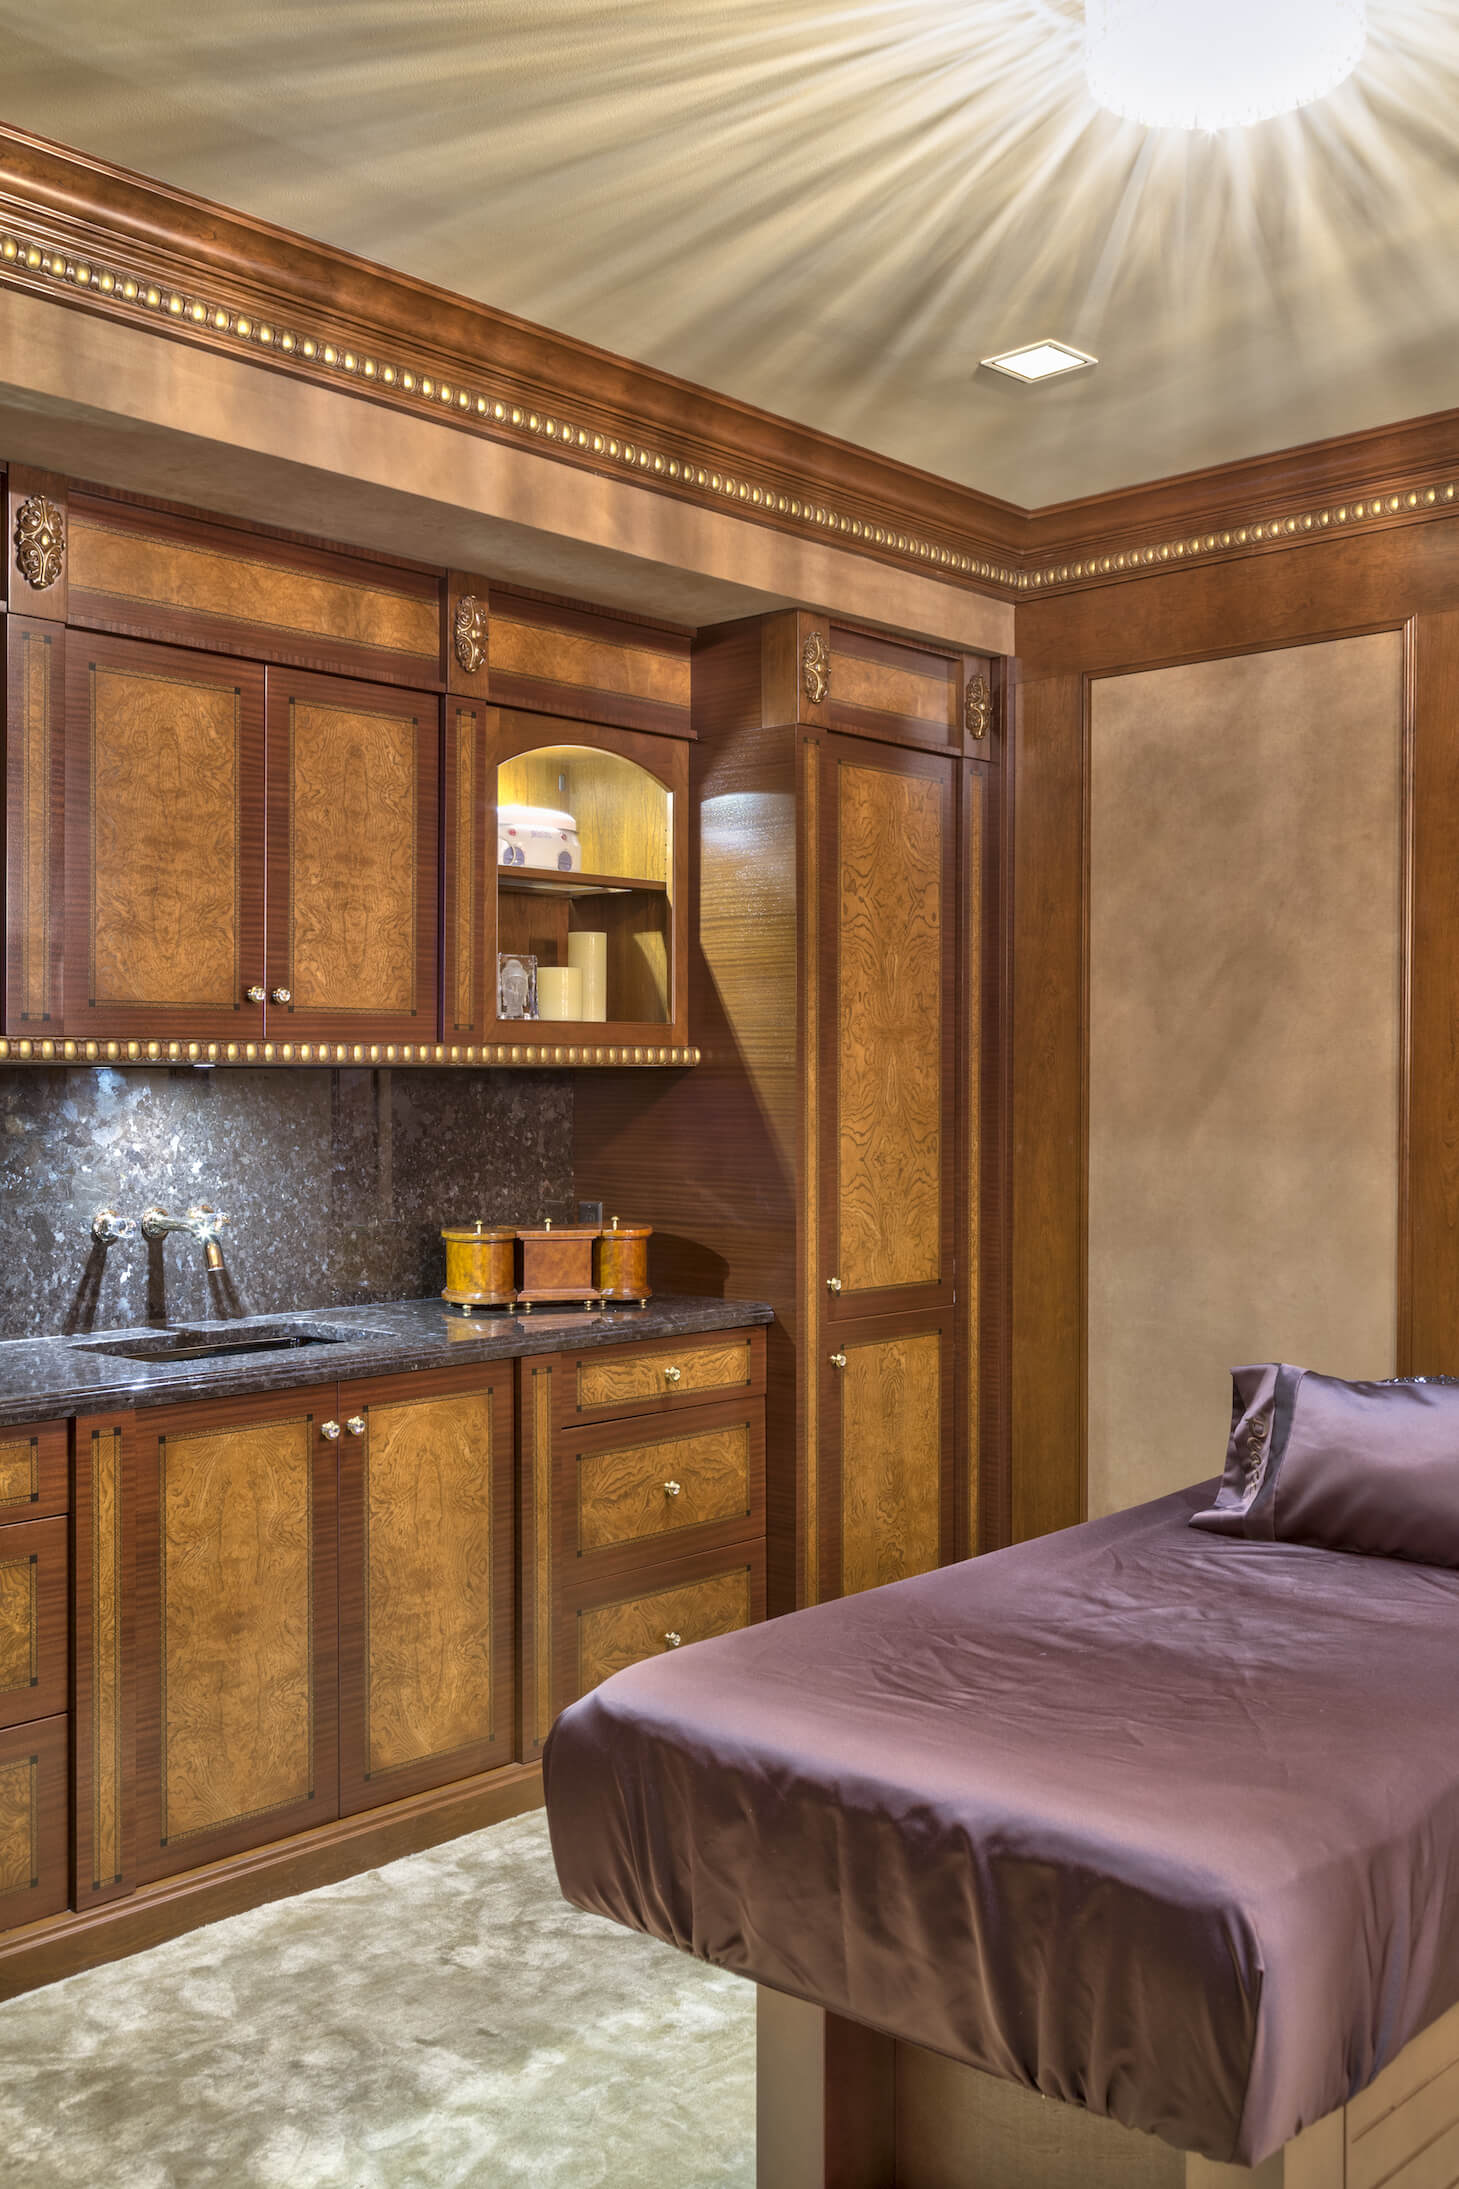 This retreat features a truly unique touch in the form of a massage room, replete with cushioned massage table and granite sink area, with storage for supplies in detailed wood cupboards.